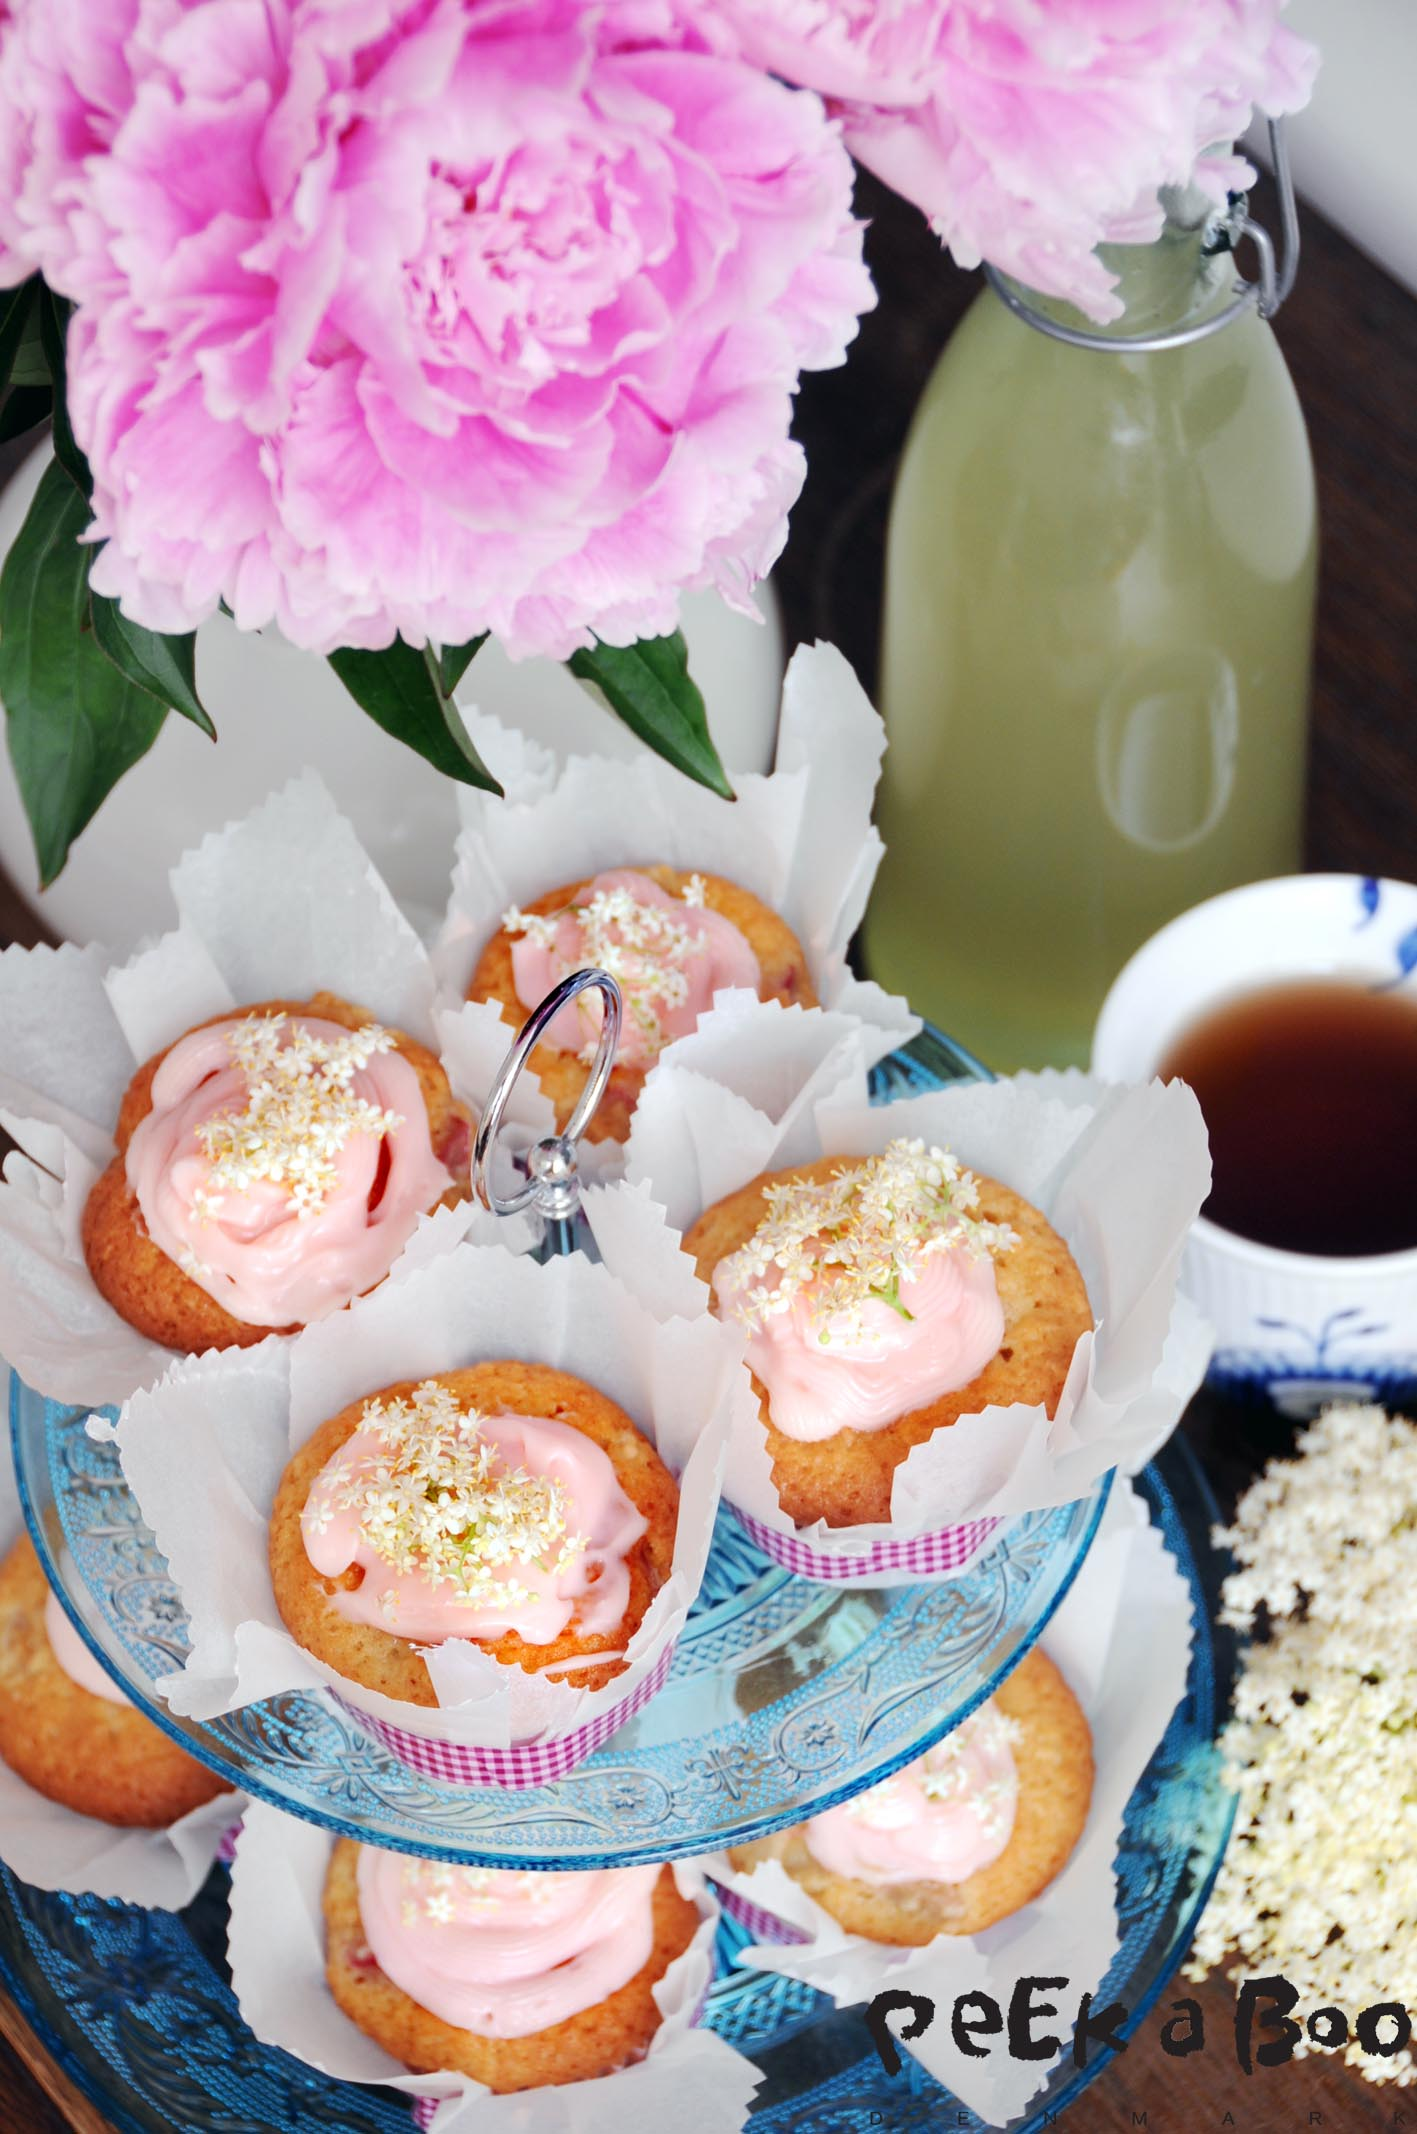 Elderflower muffins with rhubarb find the recipe in my book together with other recipes with elderflower.